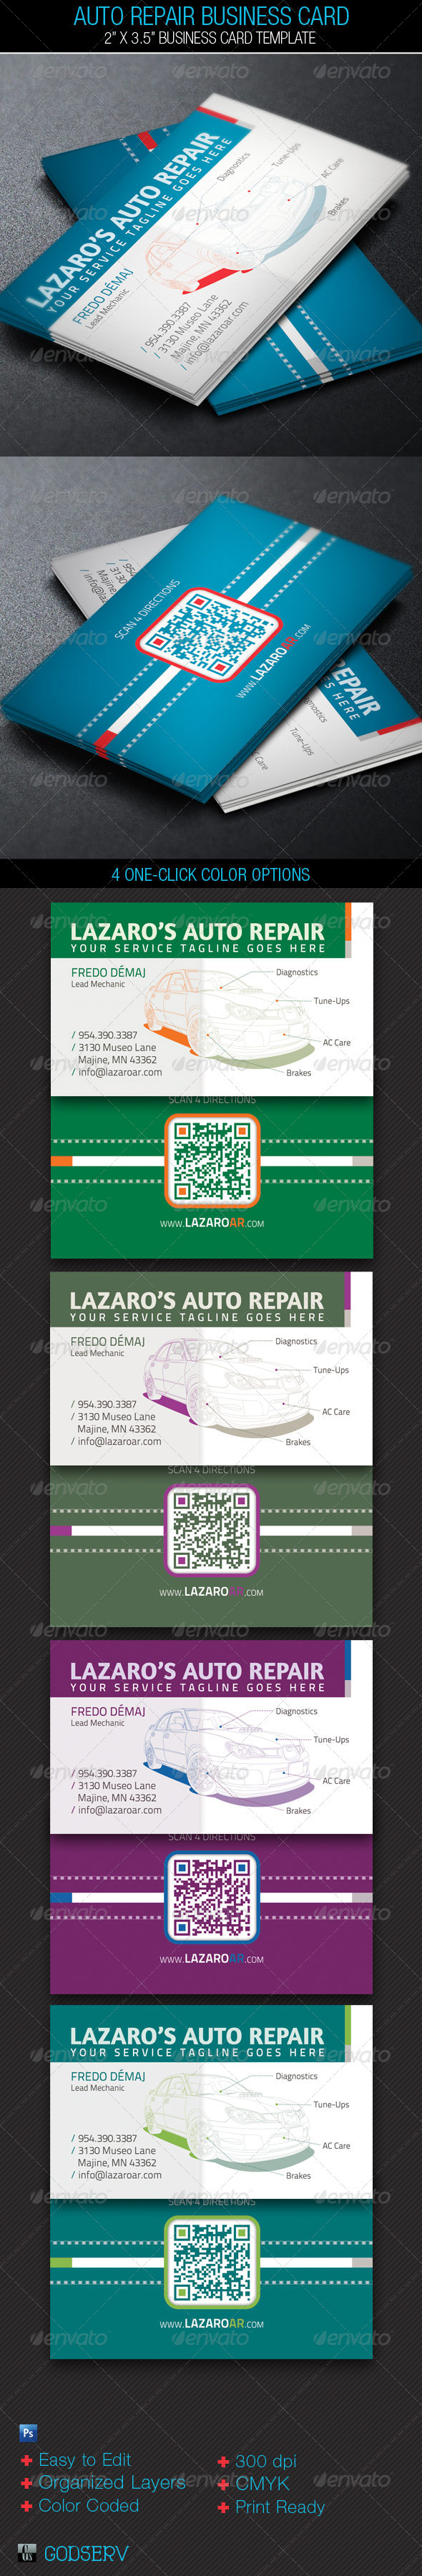 Auto Repair Service Business Card Template on Behance